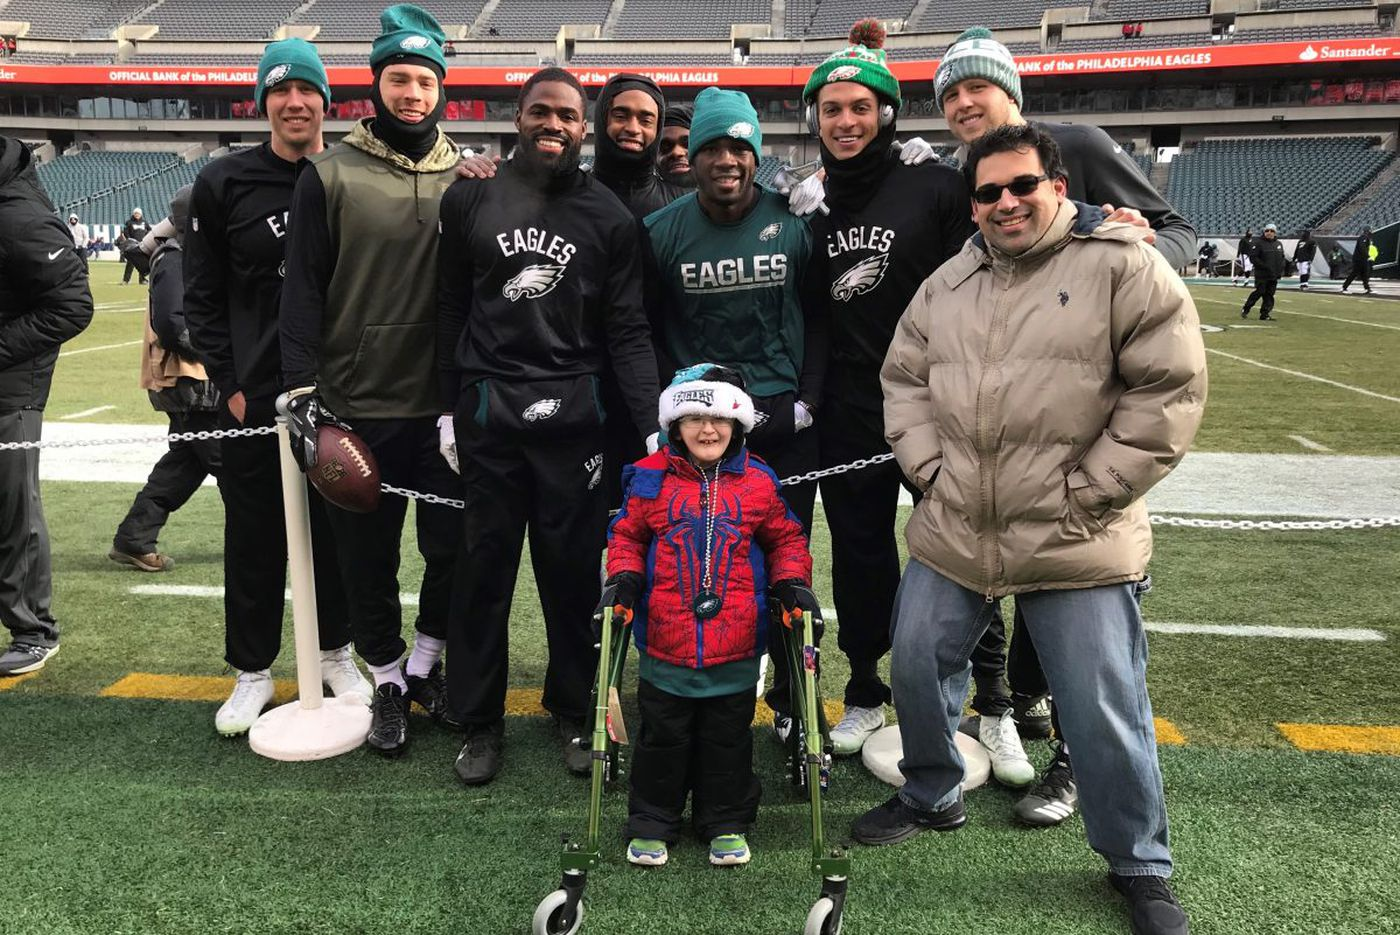 How a celebrity cleft palate dog made a boy's dream of meeting the Eagles come true